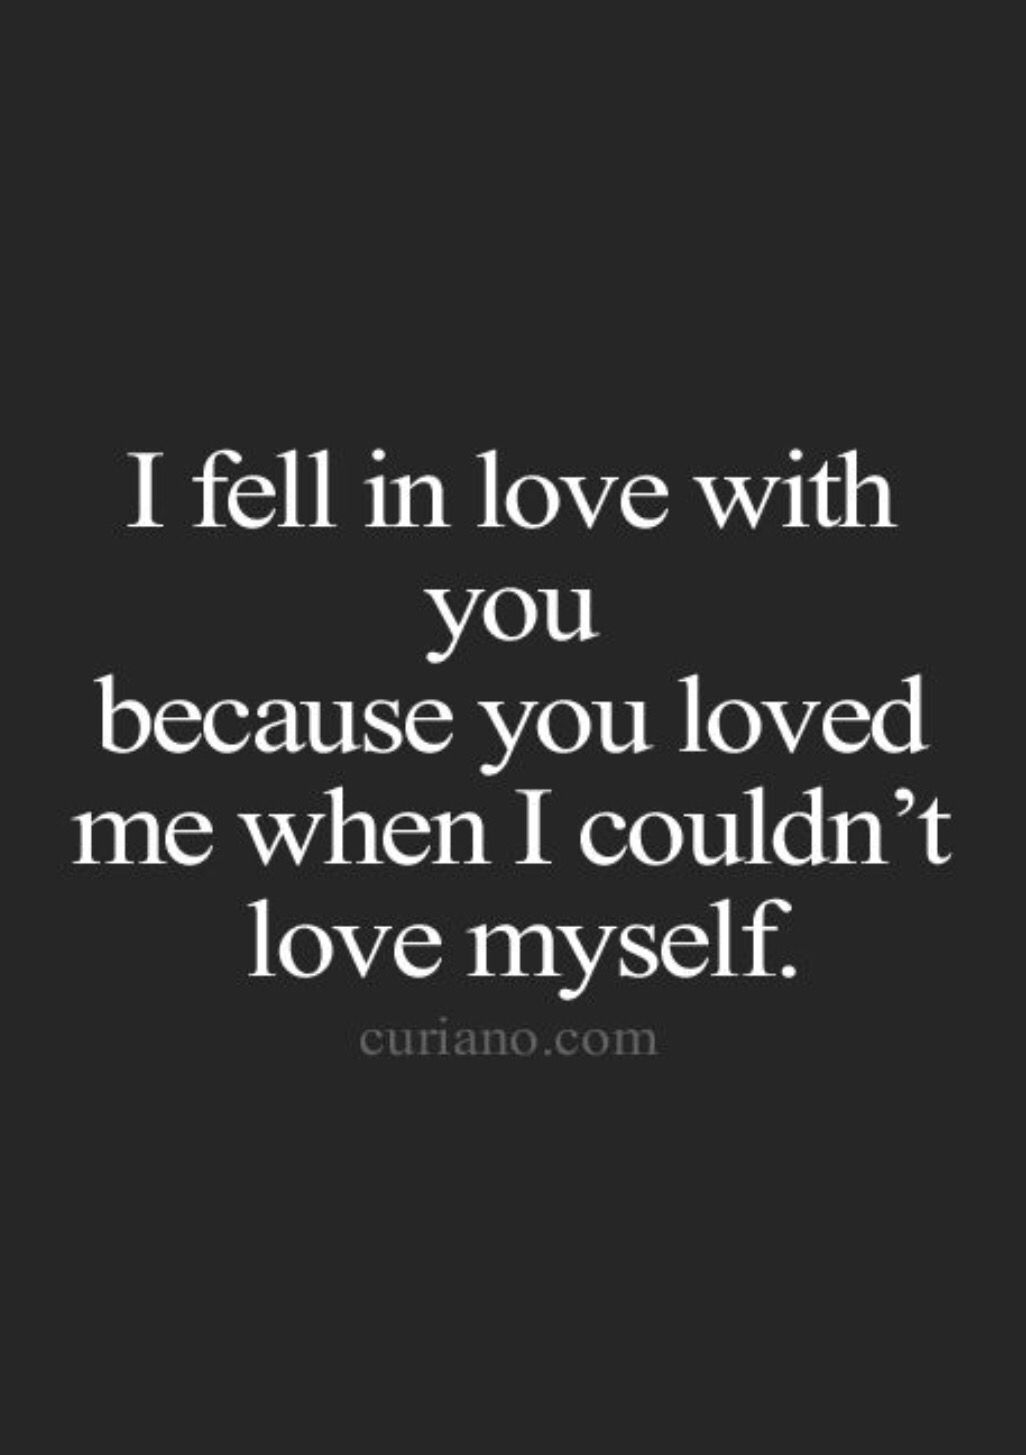 Short Love Quotes Him Pinjennifer Johnson On Love  Pinterest  Relationships